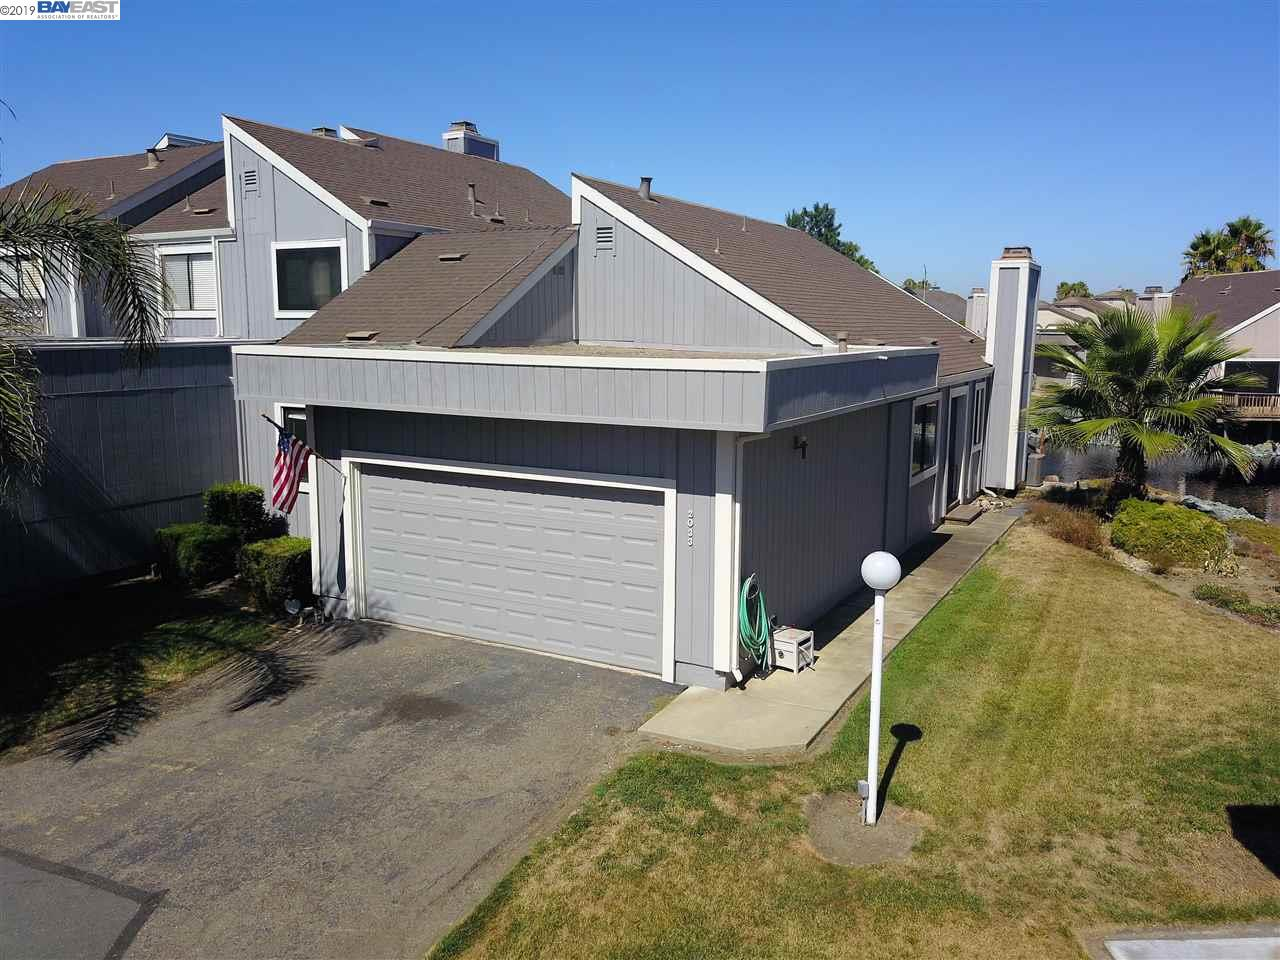 2033 Sand Point Rd, DISCOVERY BAY, CA 94505